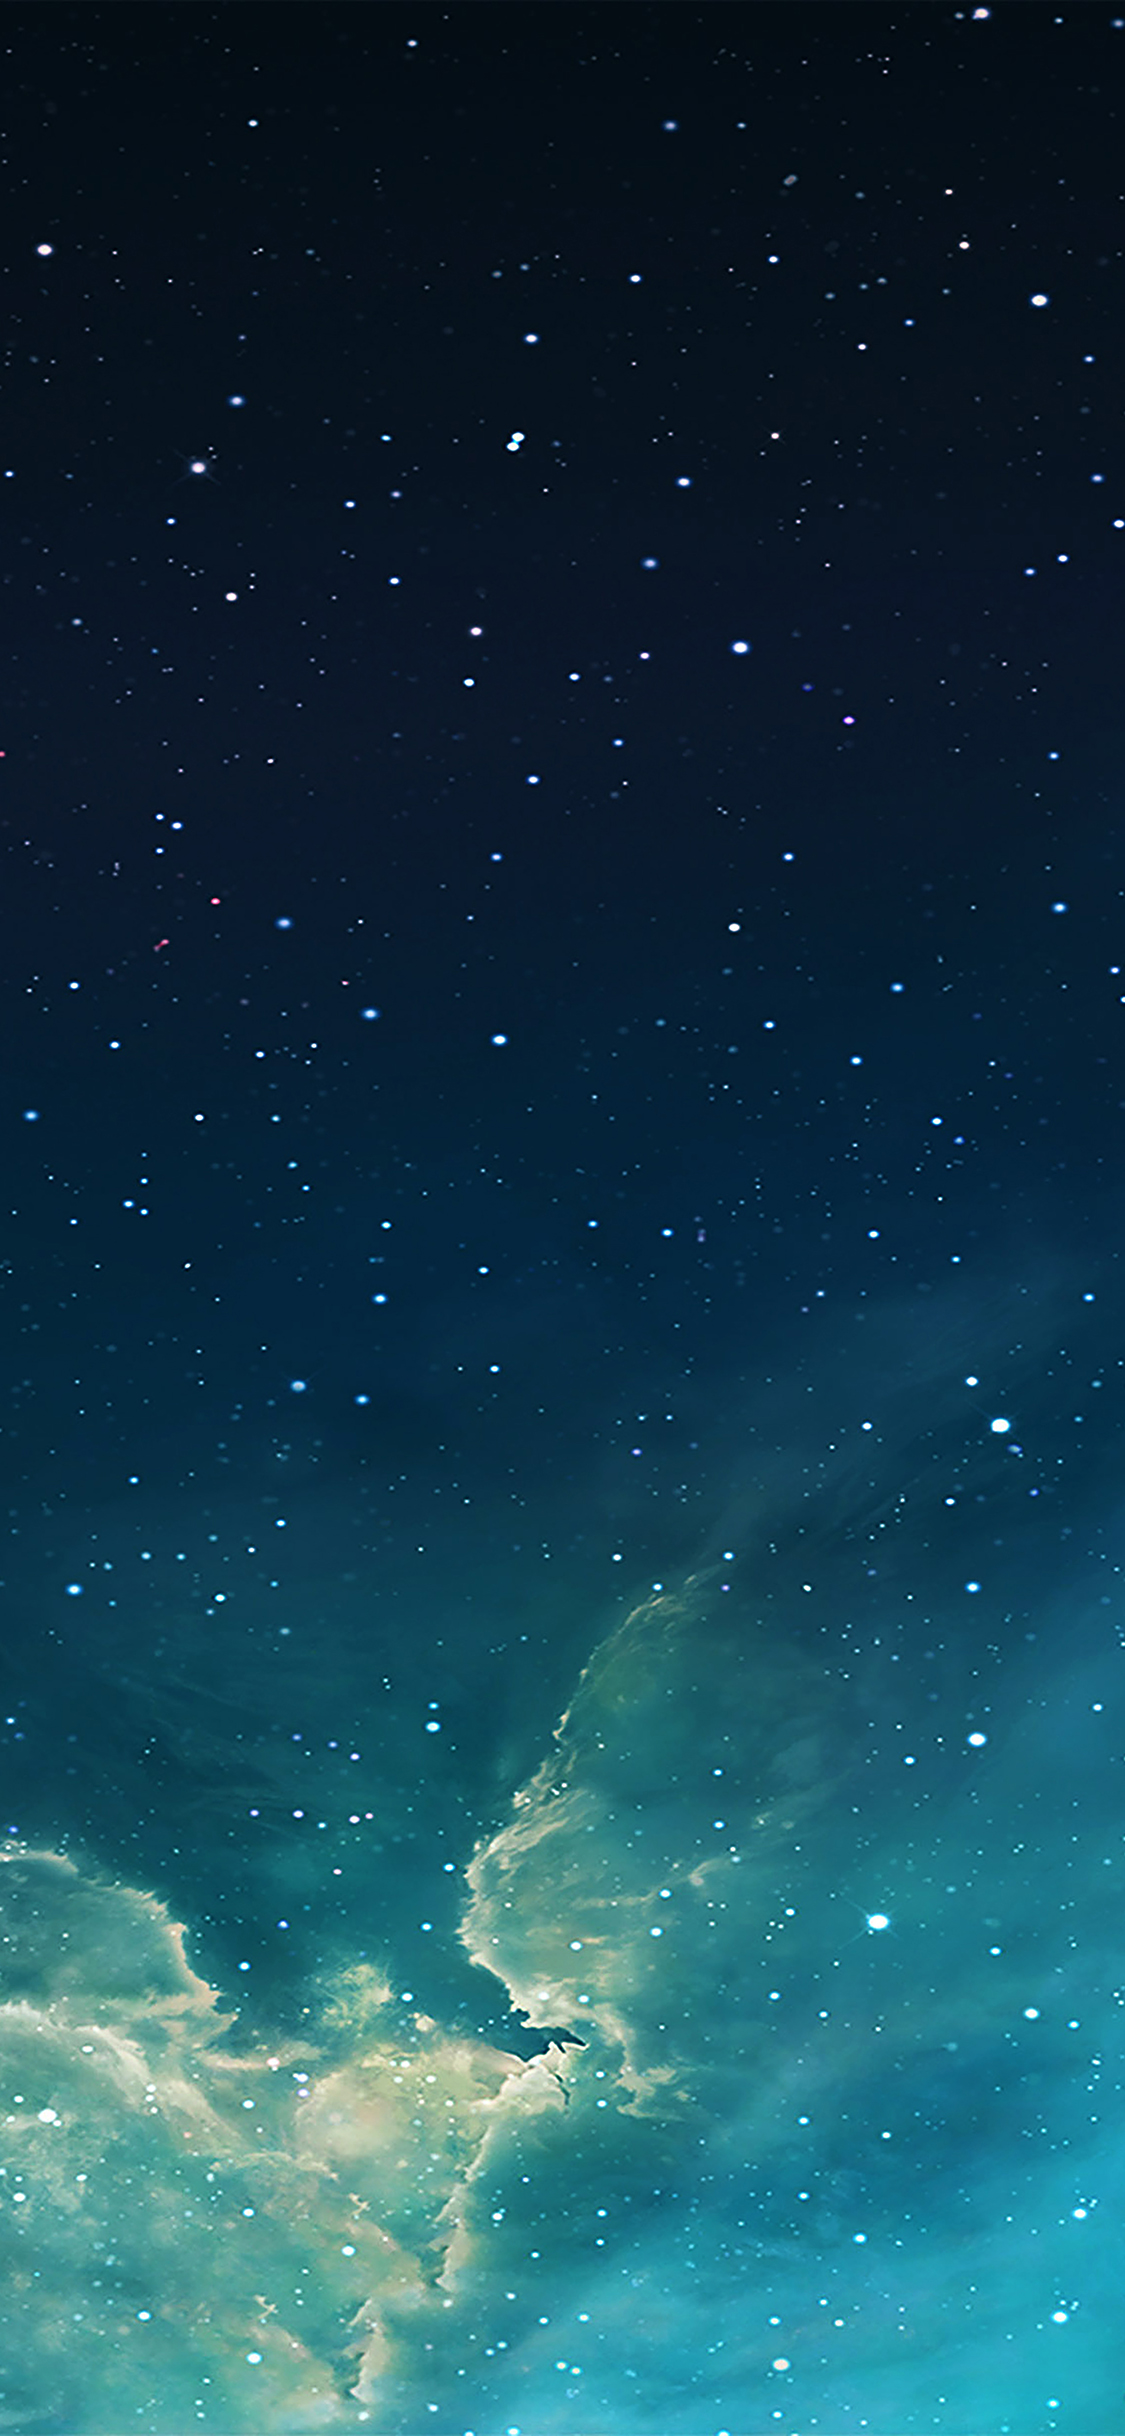 Mc56 Wallpaper Galaxy Blue 7 Starry Star Sky Wallpaper